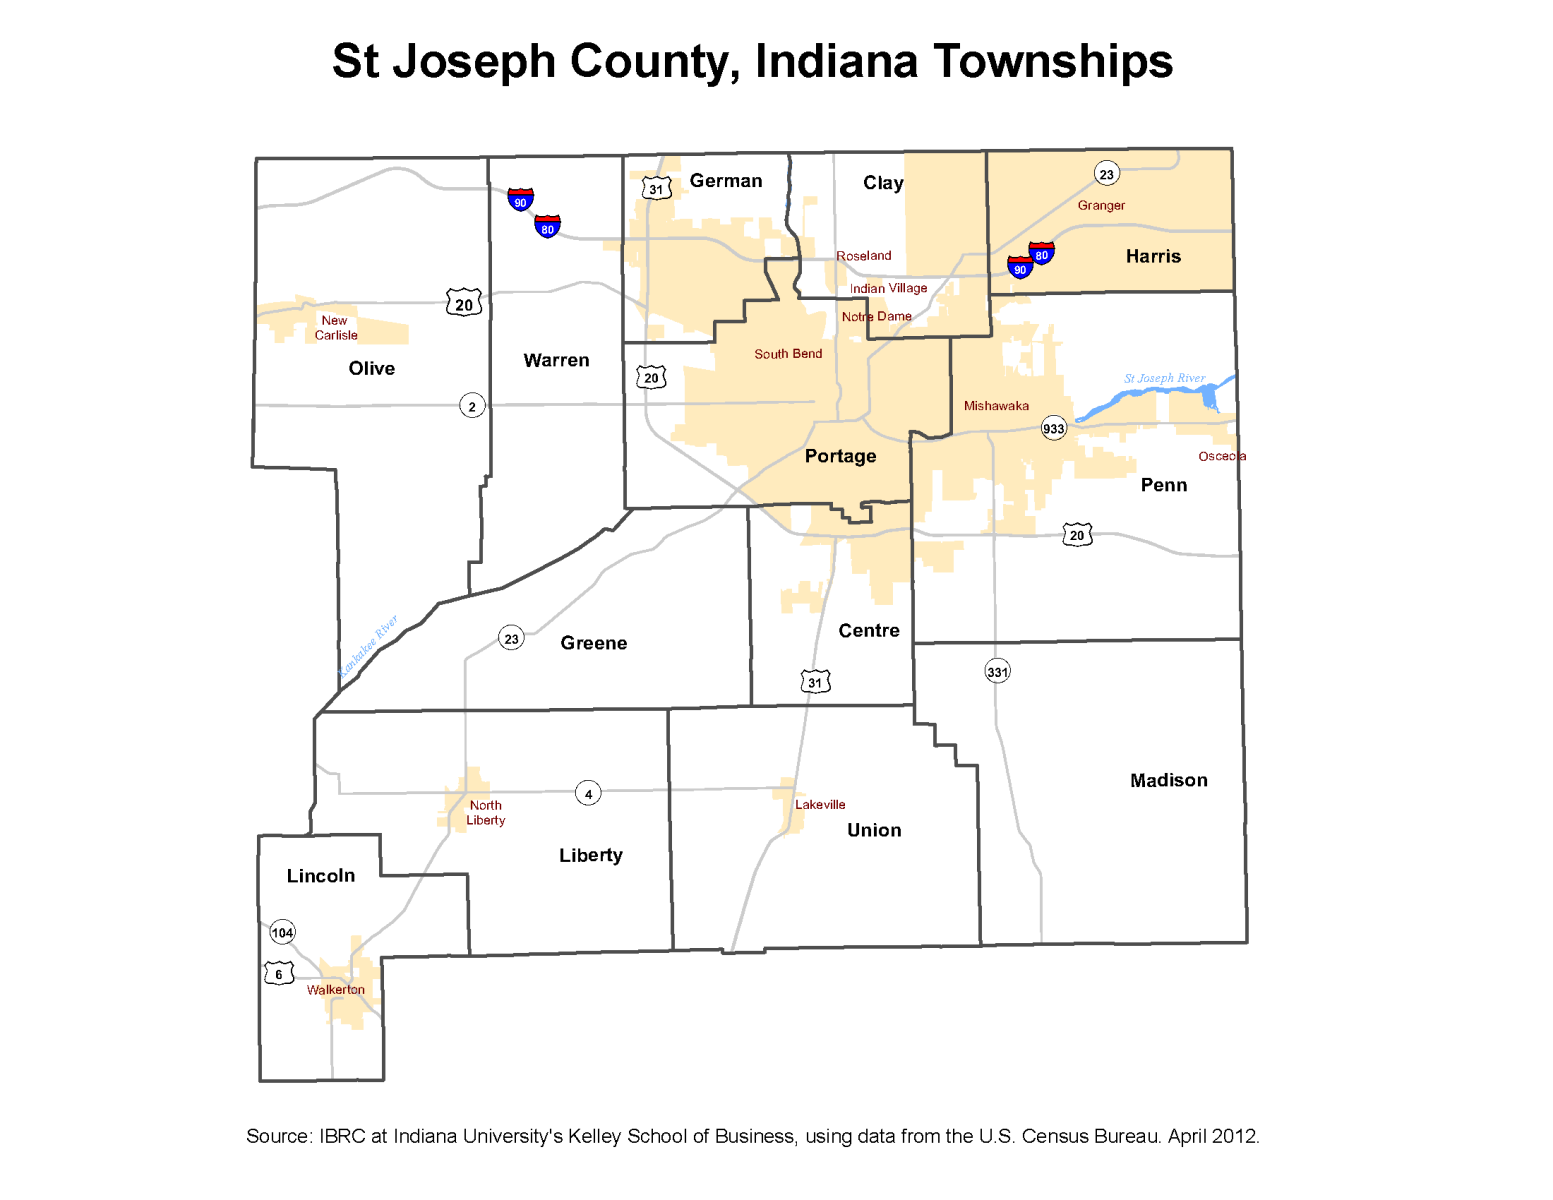 saint joseph county dating Search for saint joseph county sheriff sale properties in indiana saint joseph county sheriff sales service includes some of the best saint joseph bank sheriff sale homes in.